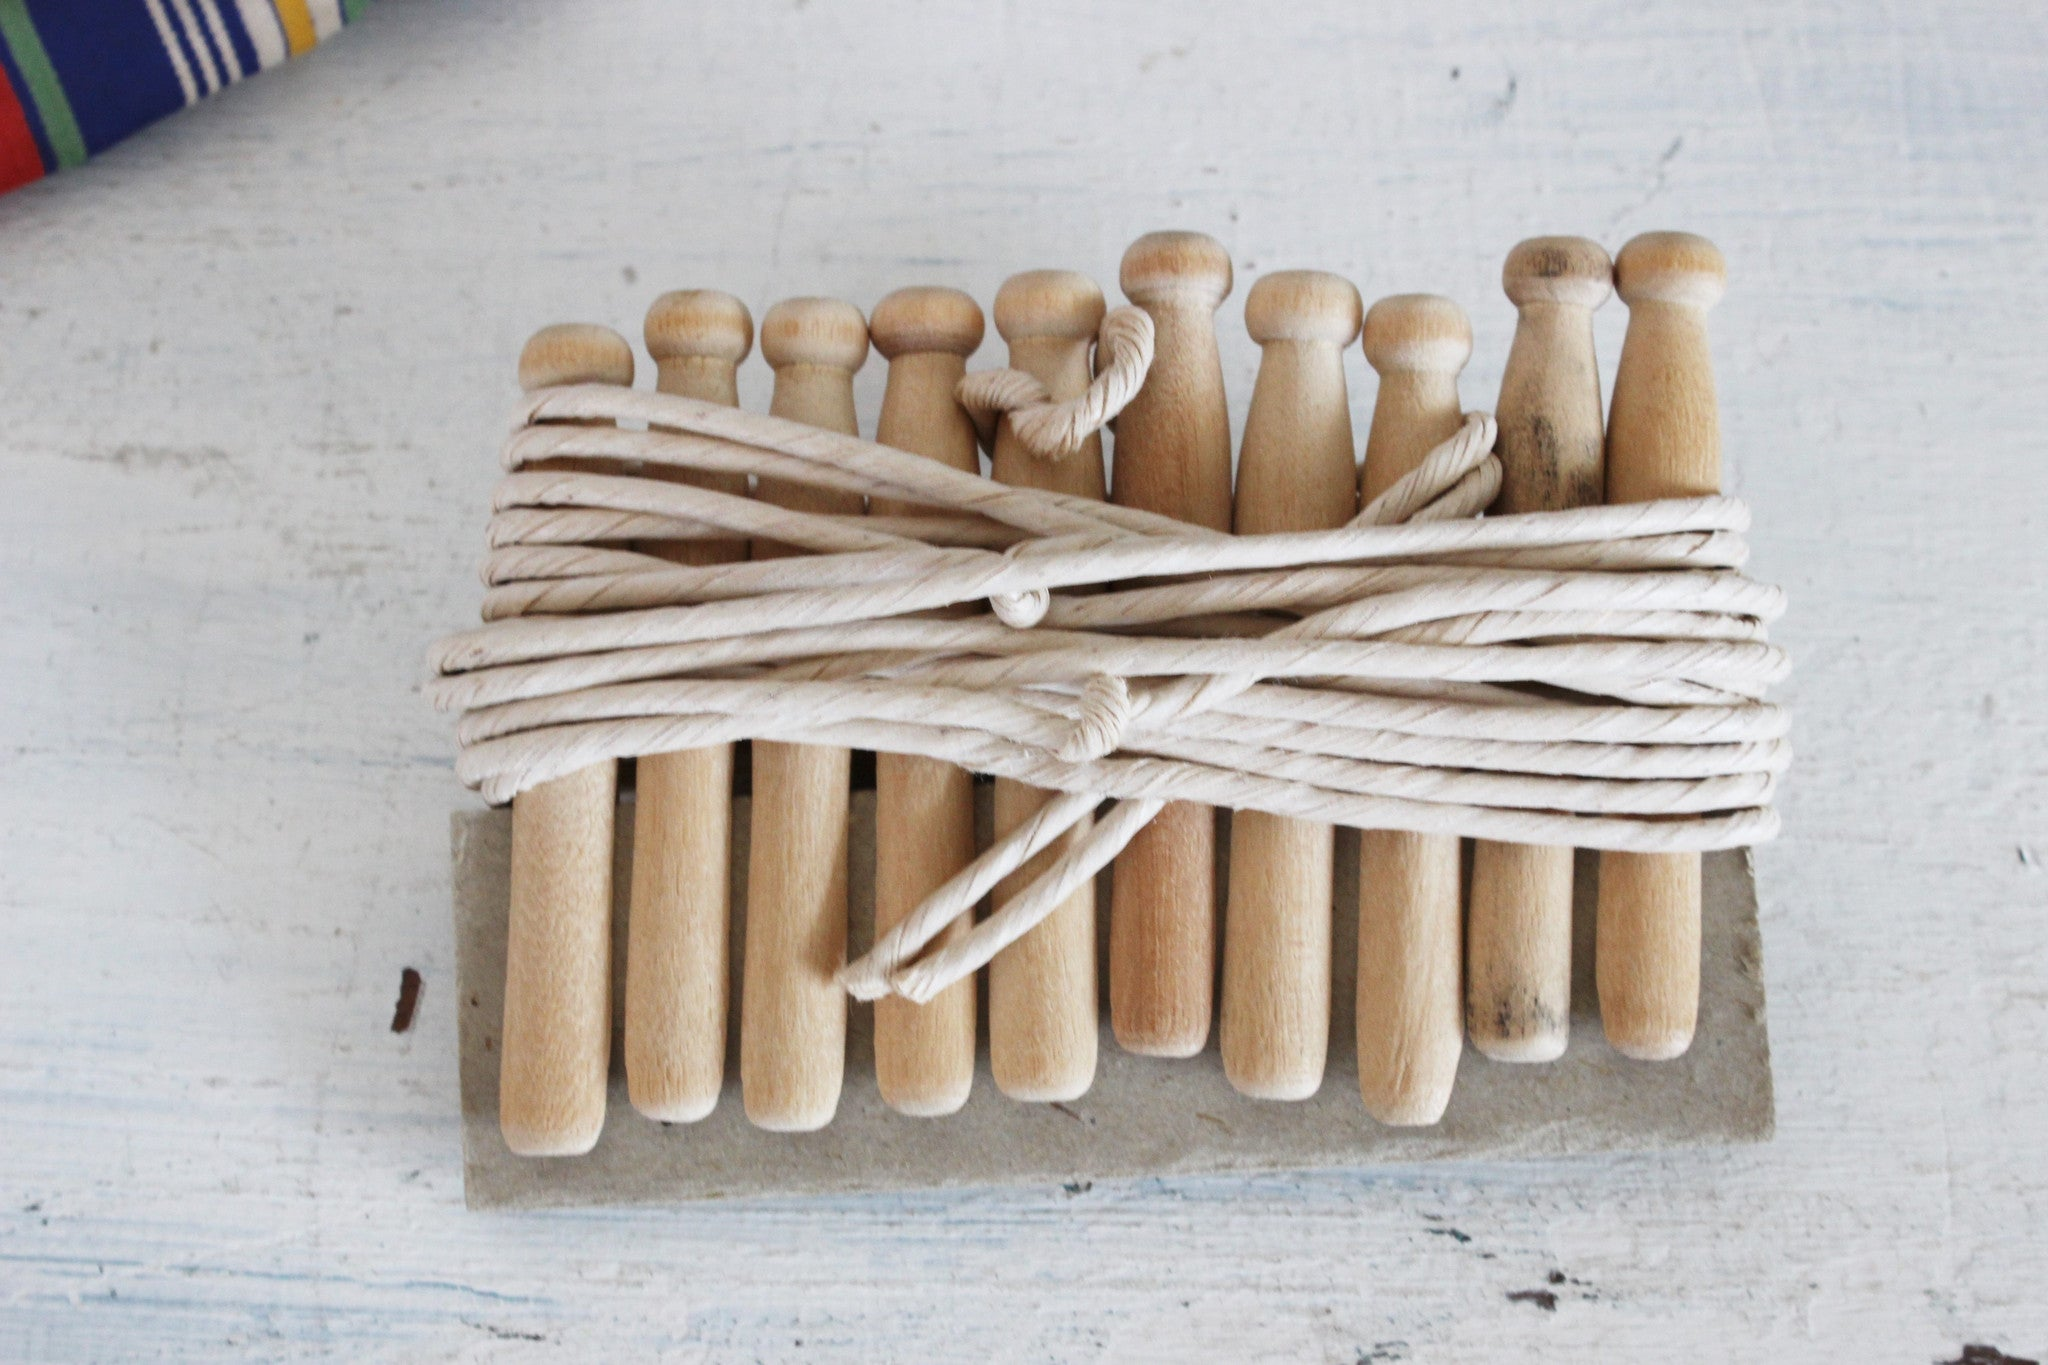 Vintage 1940s Travel Laundry Line / Wooden Clothes Pins